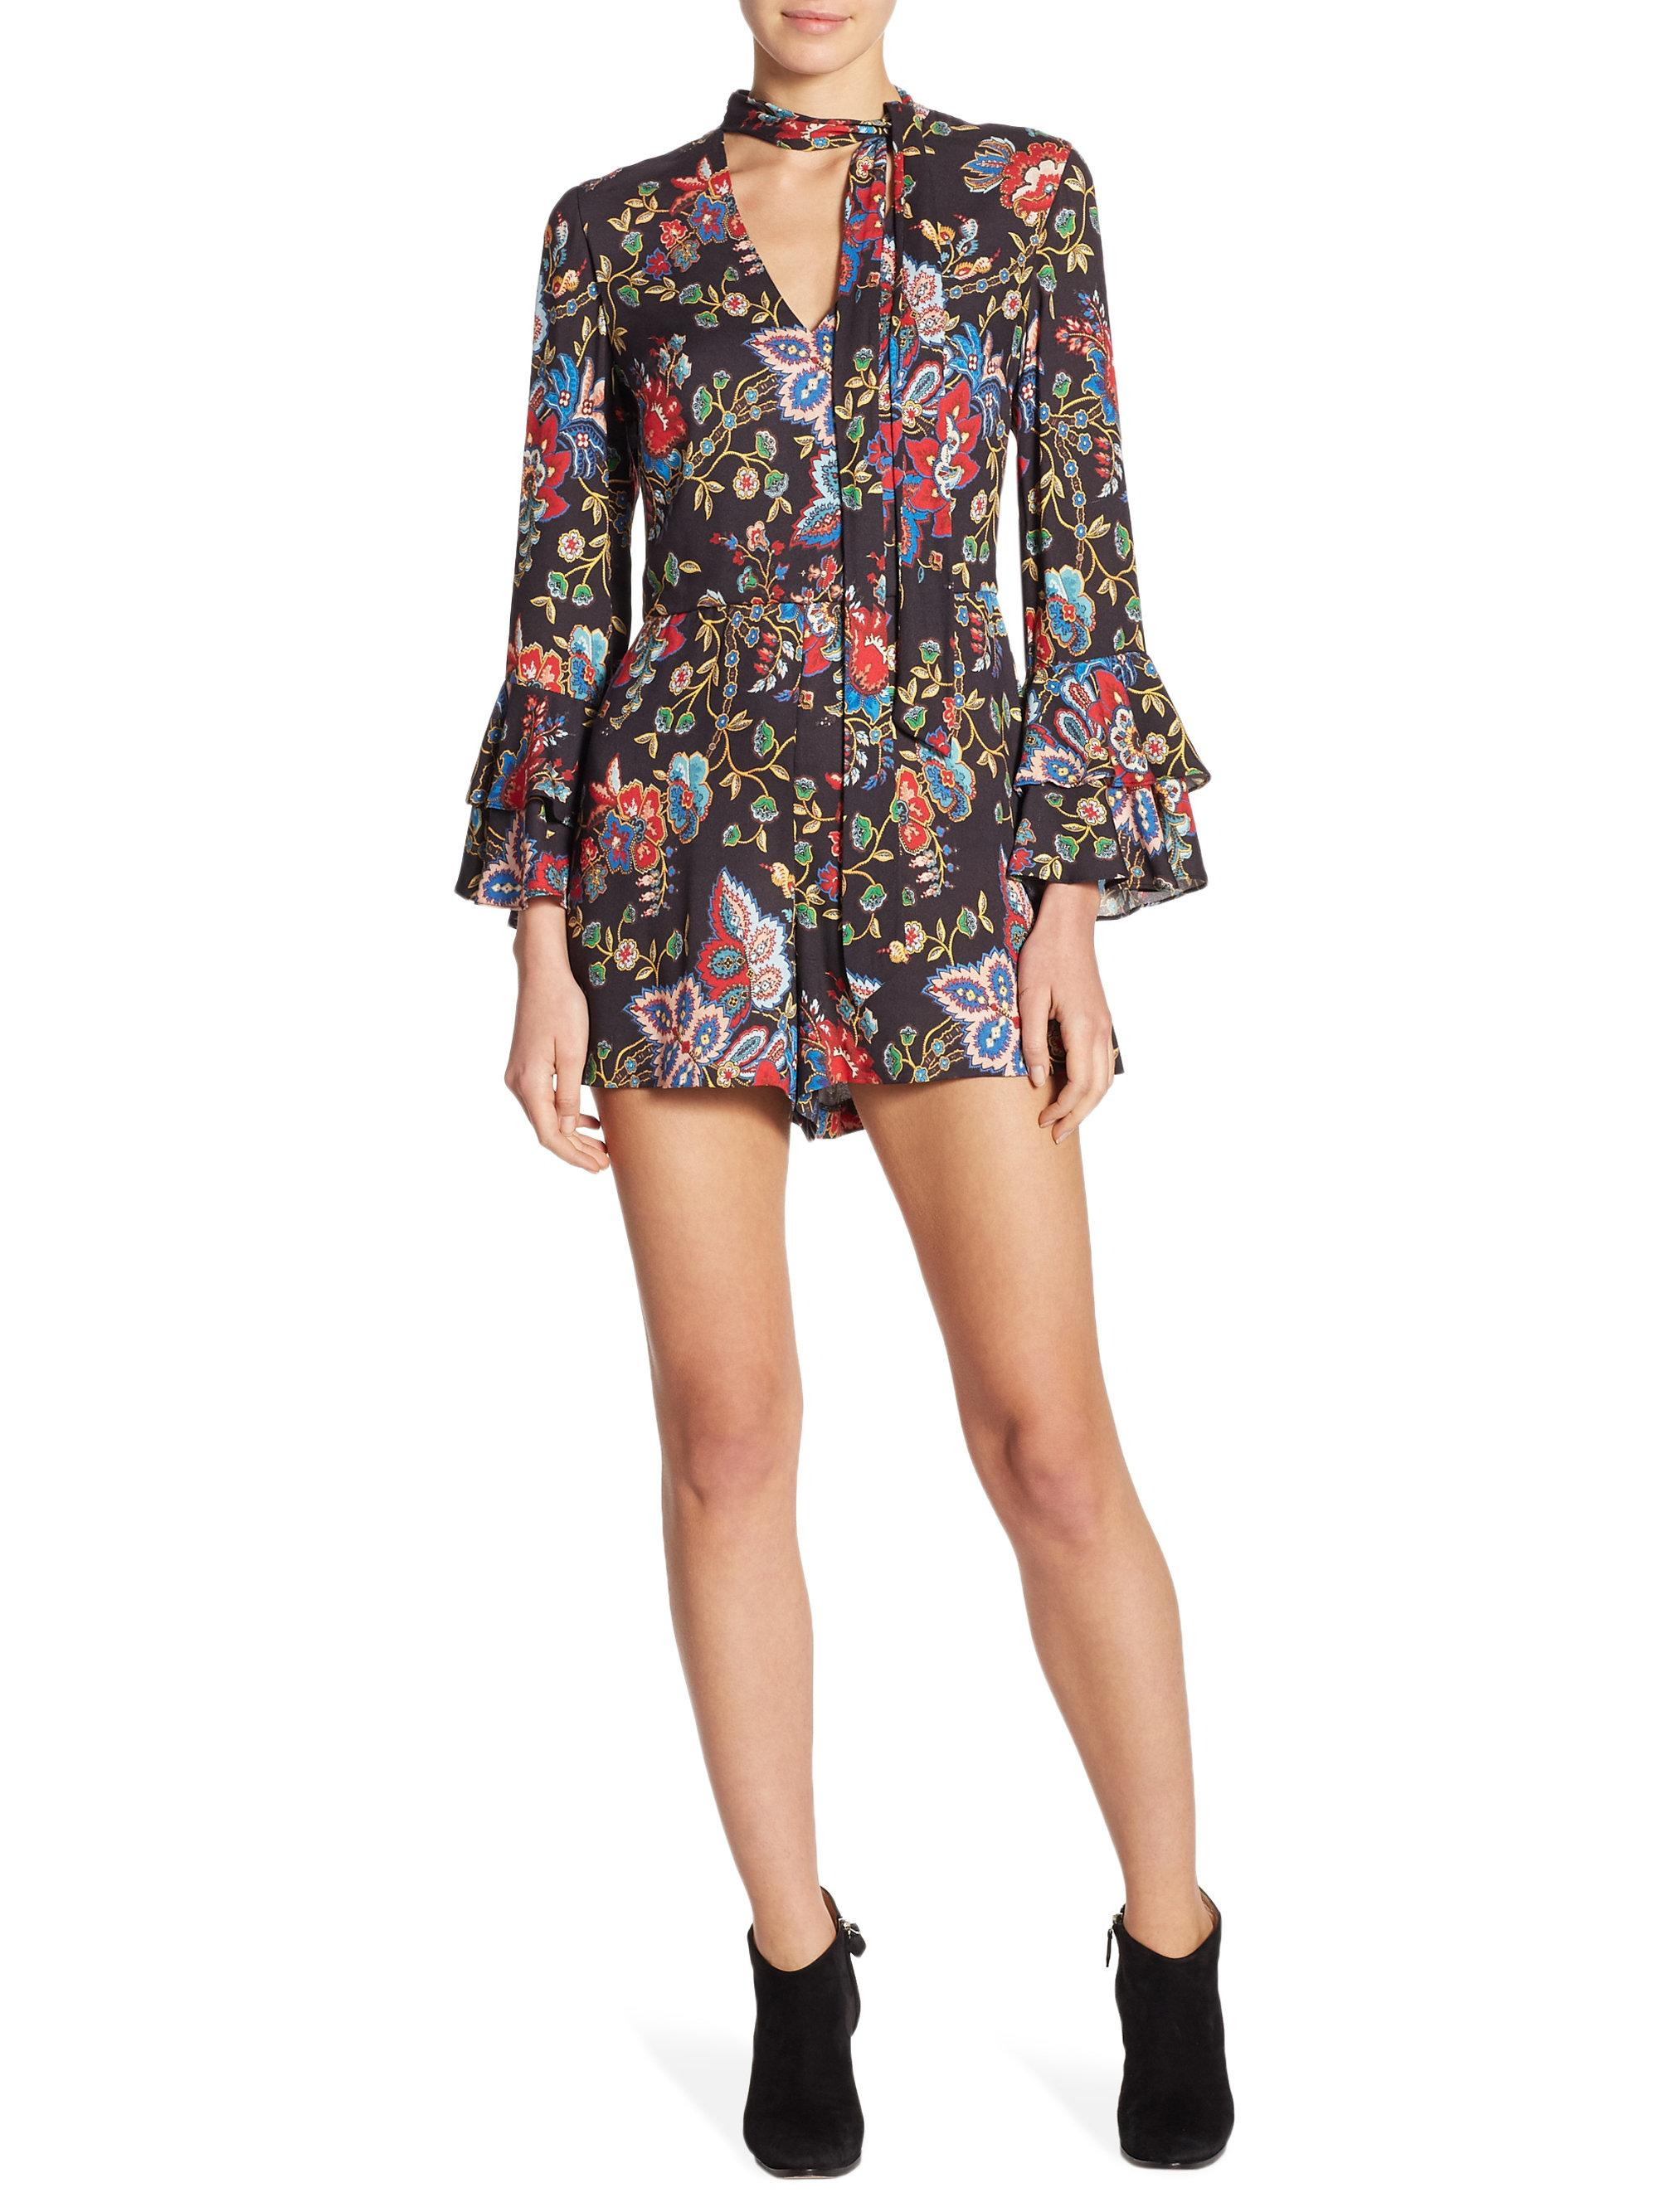 d1ce5415ff9 Lyst - Alice + Olivia Macall Floral Romper in Black